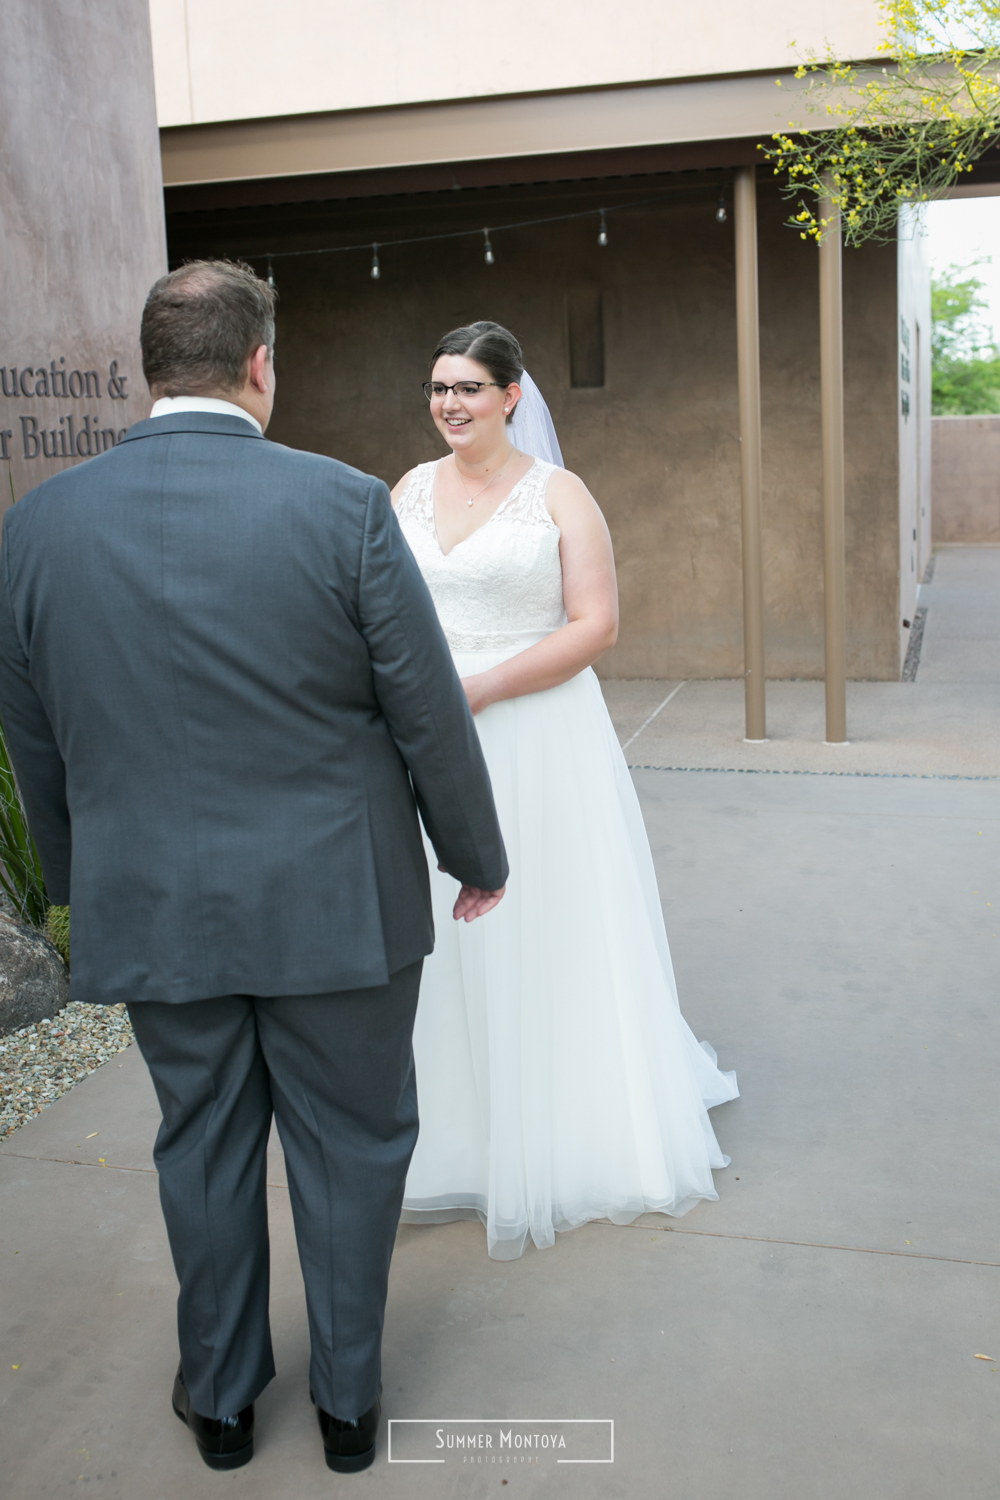 First look at a wedding at the Desert Botanical Gardens